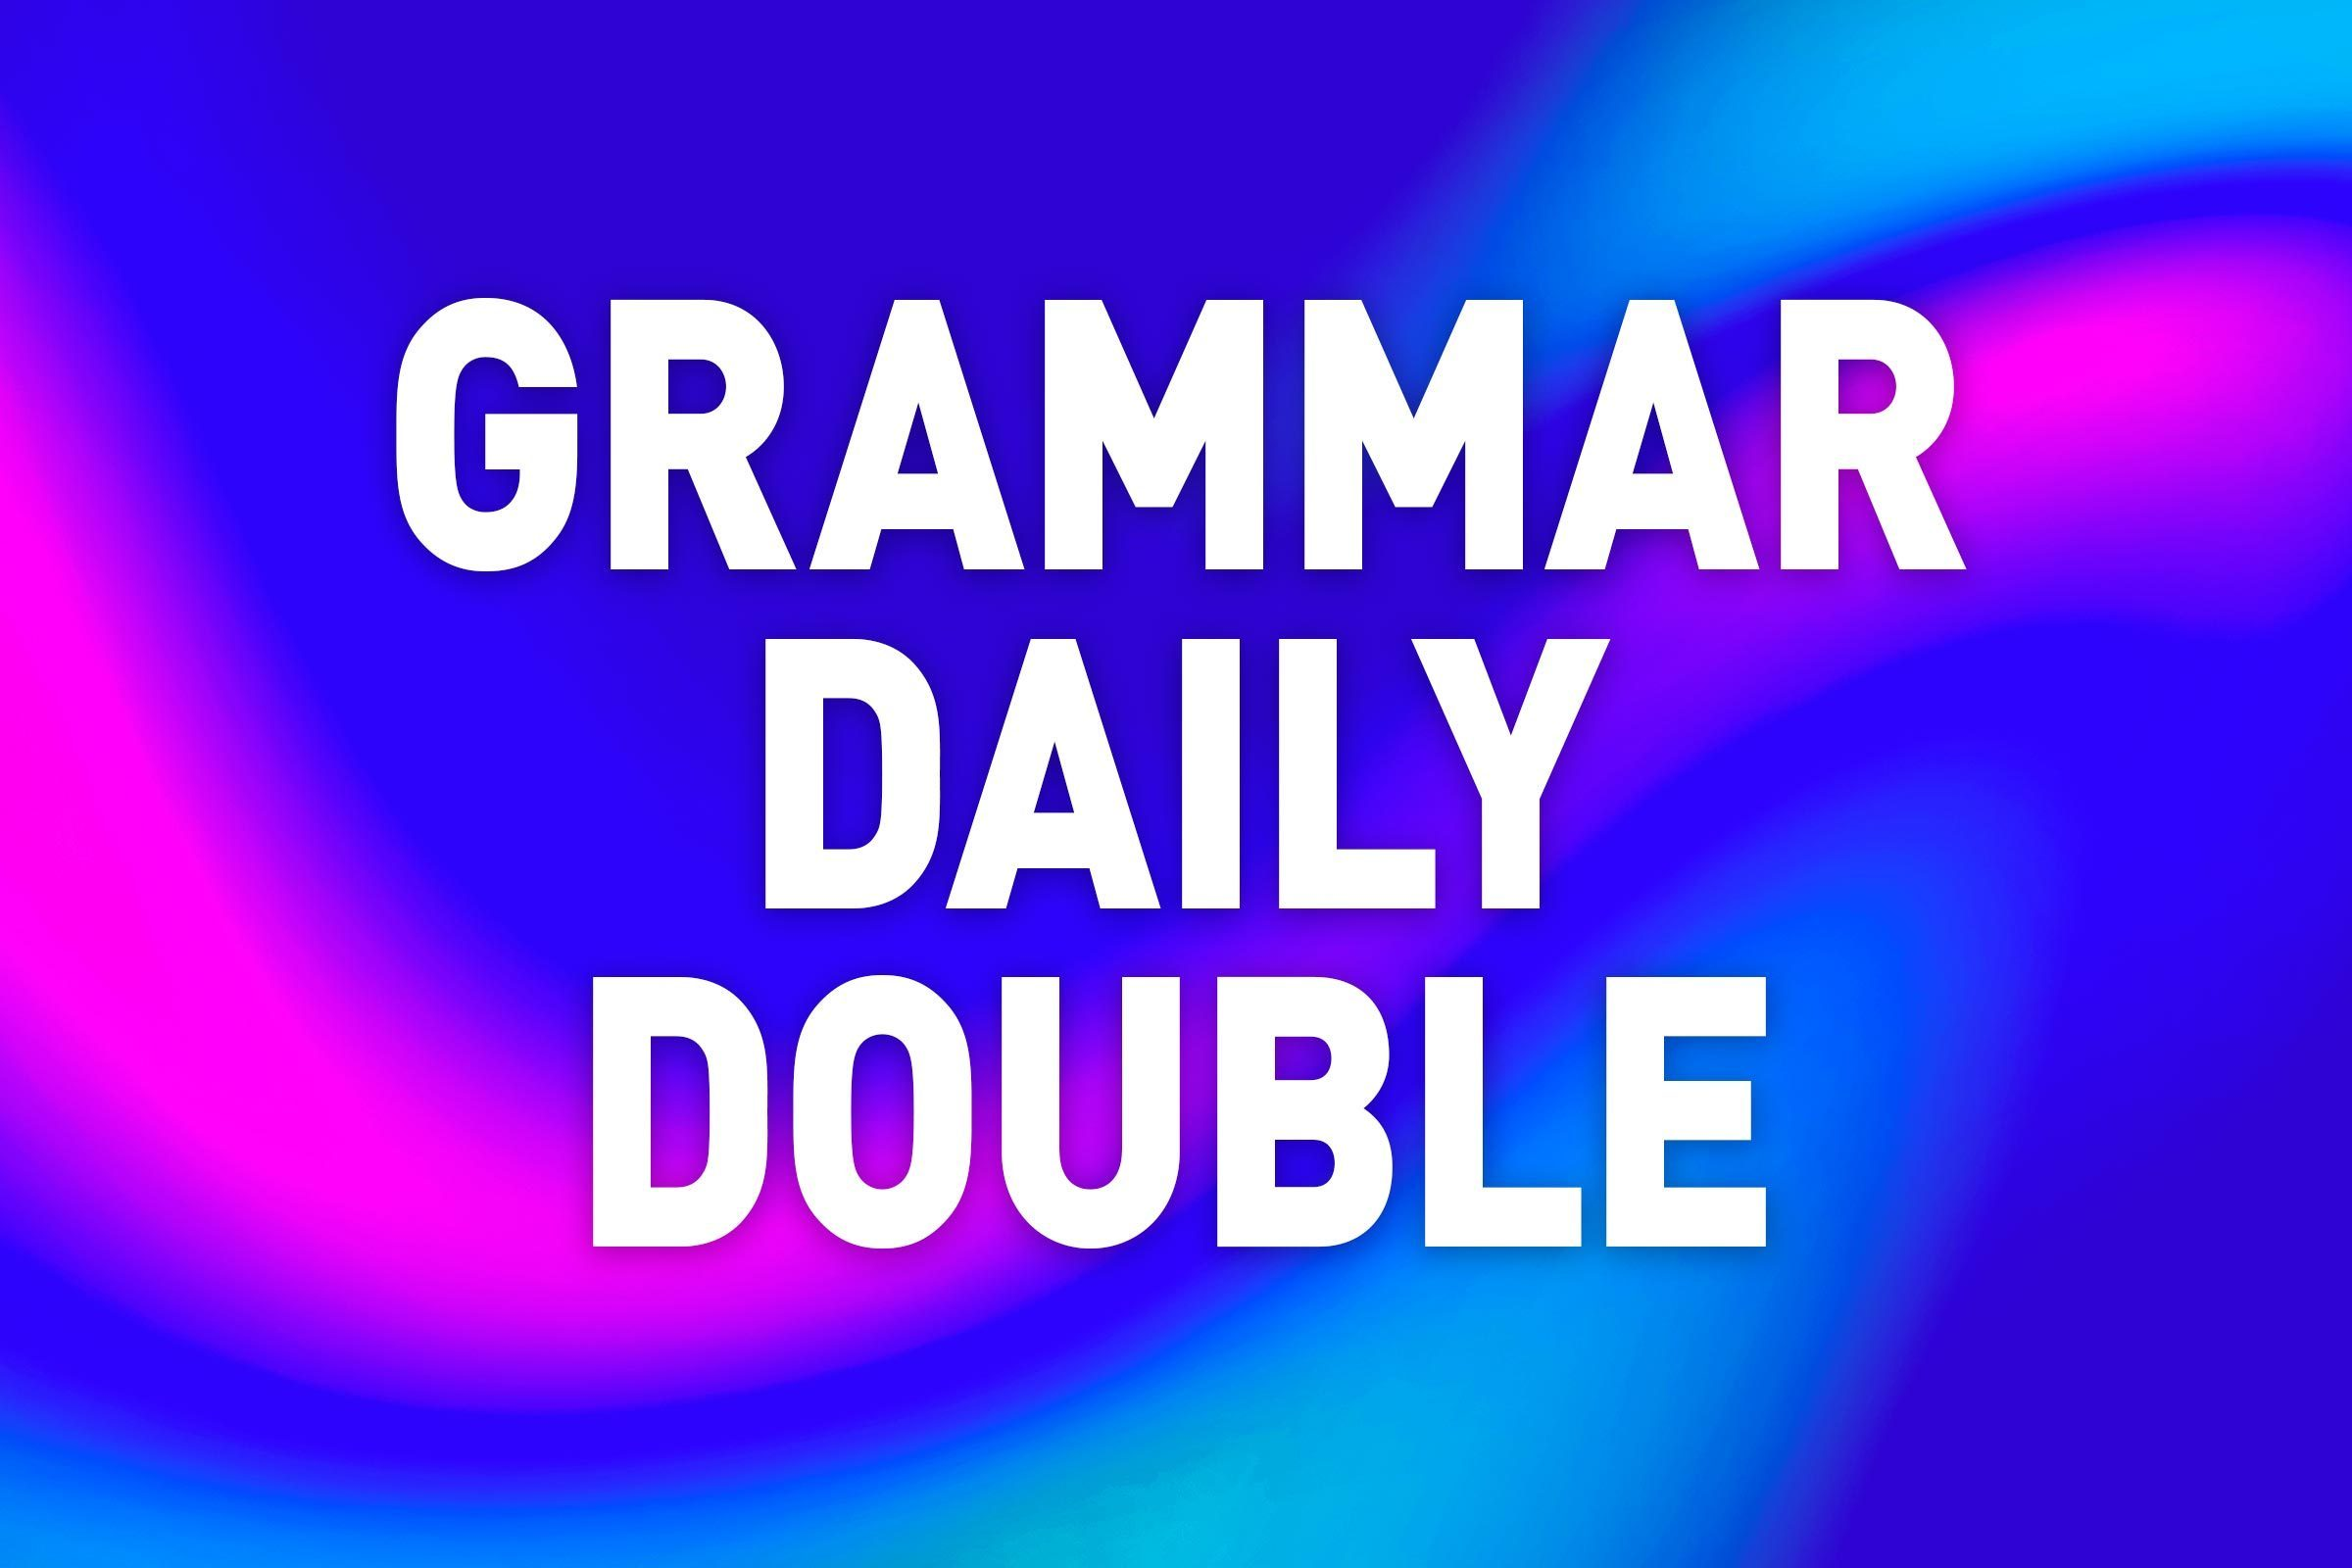 grammar daily double